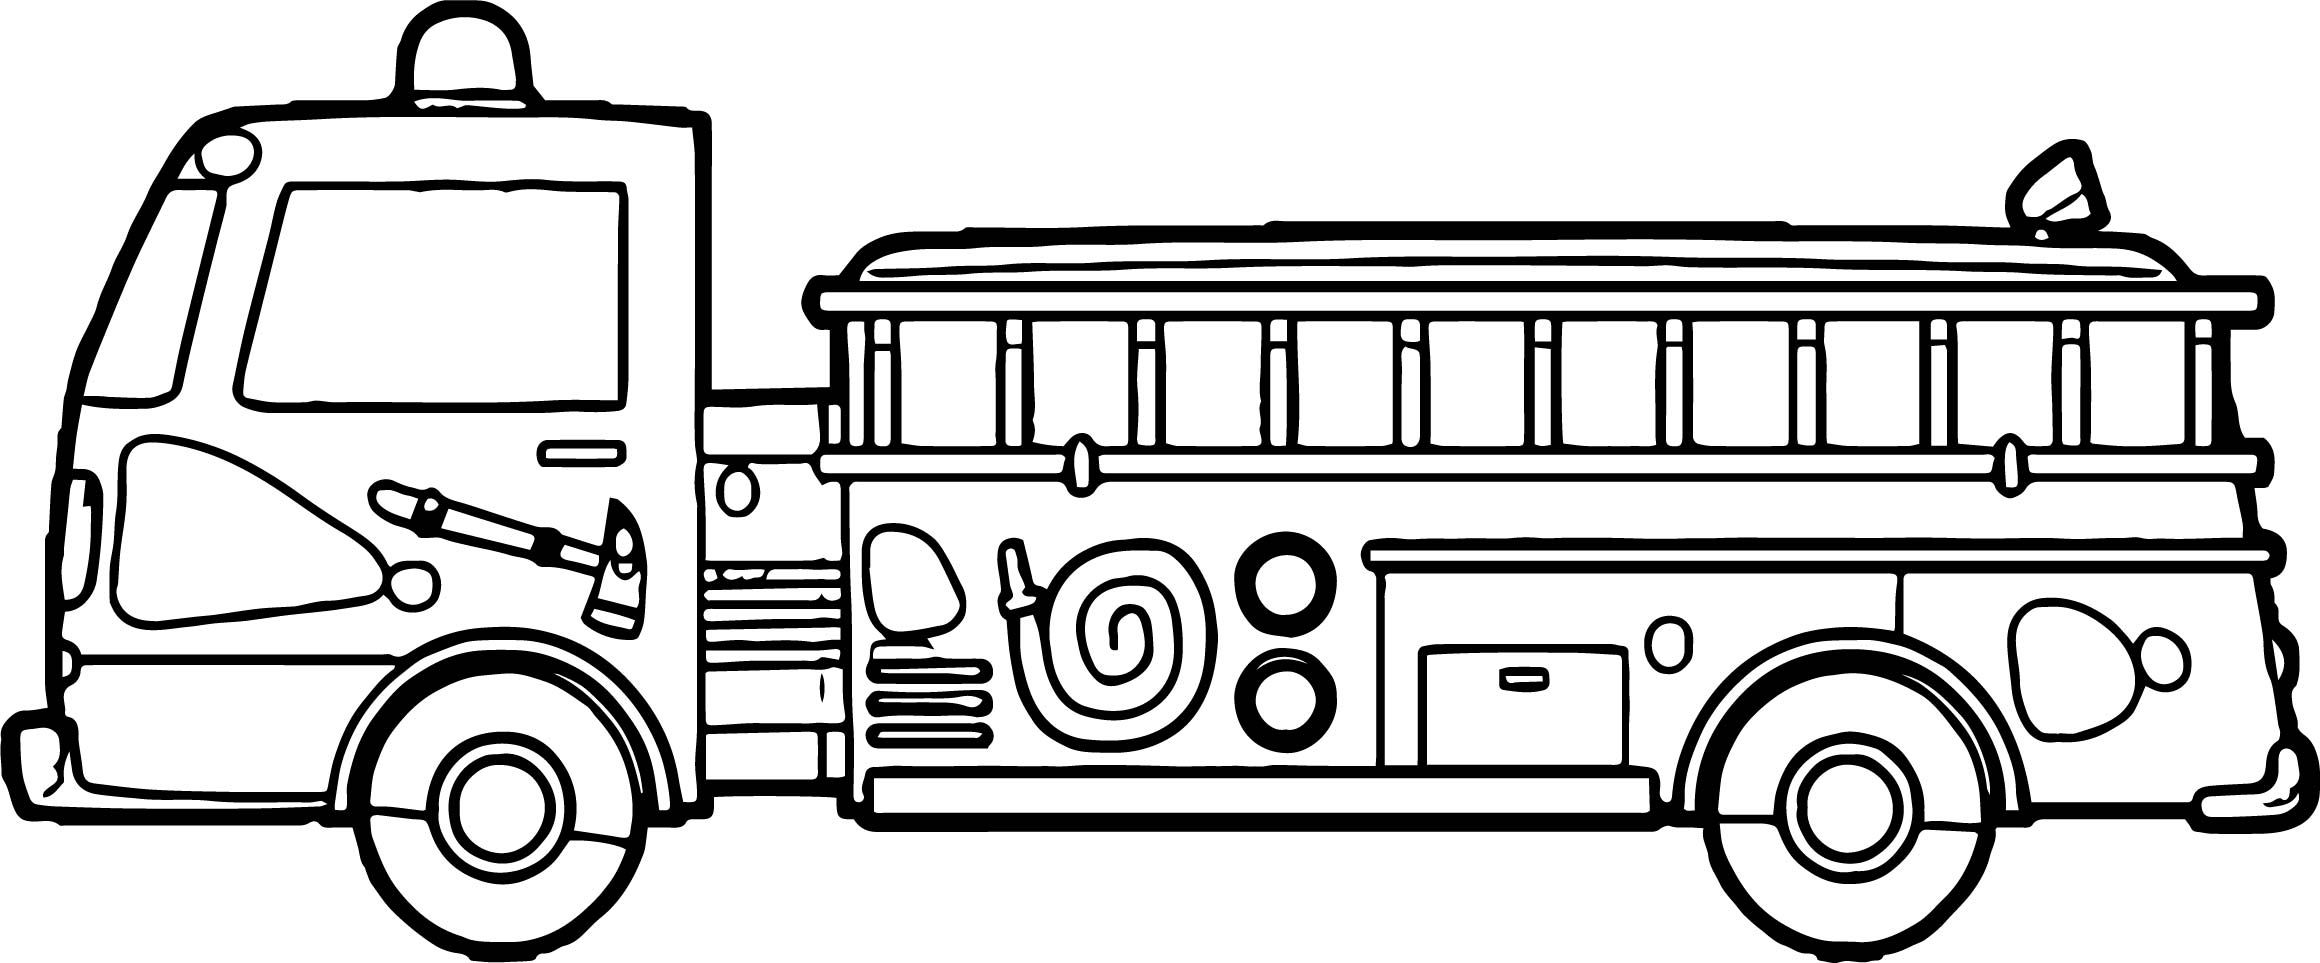 Nice Fire Truck Tall Side Coloring Page